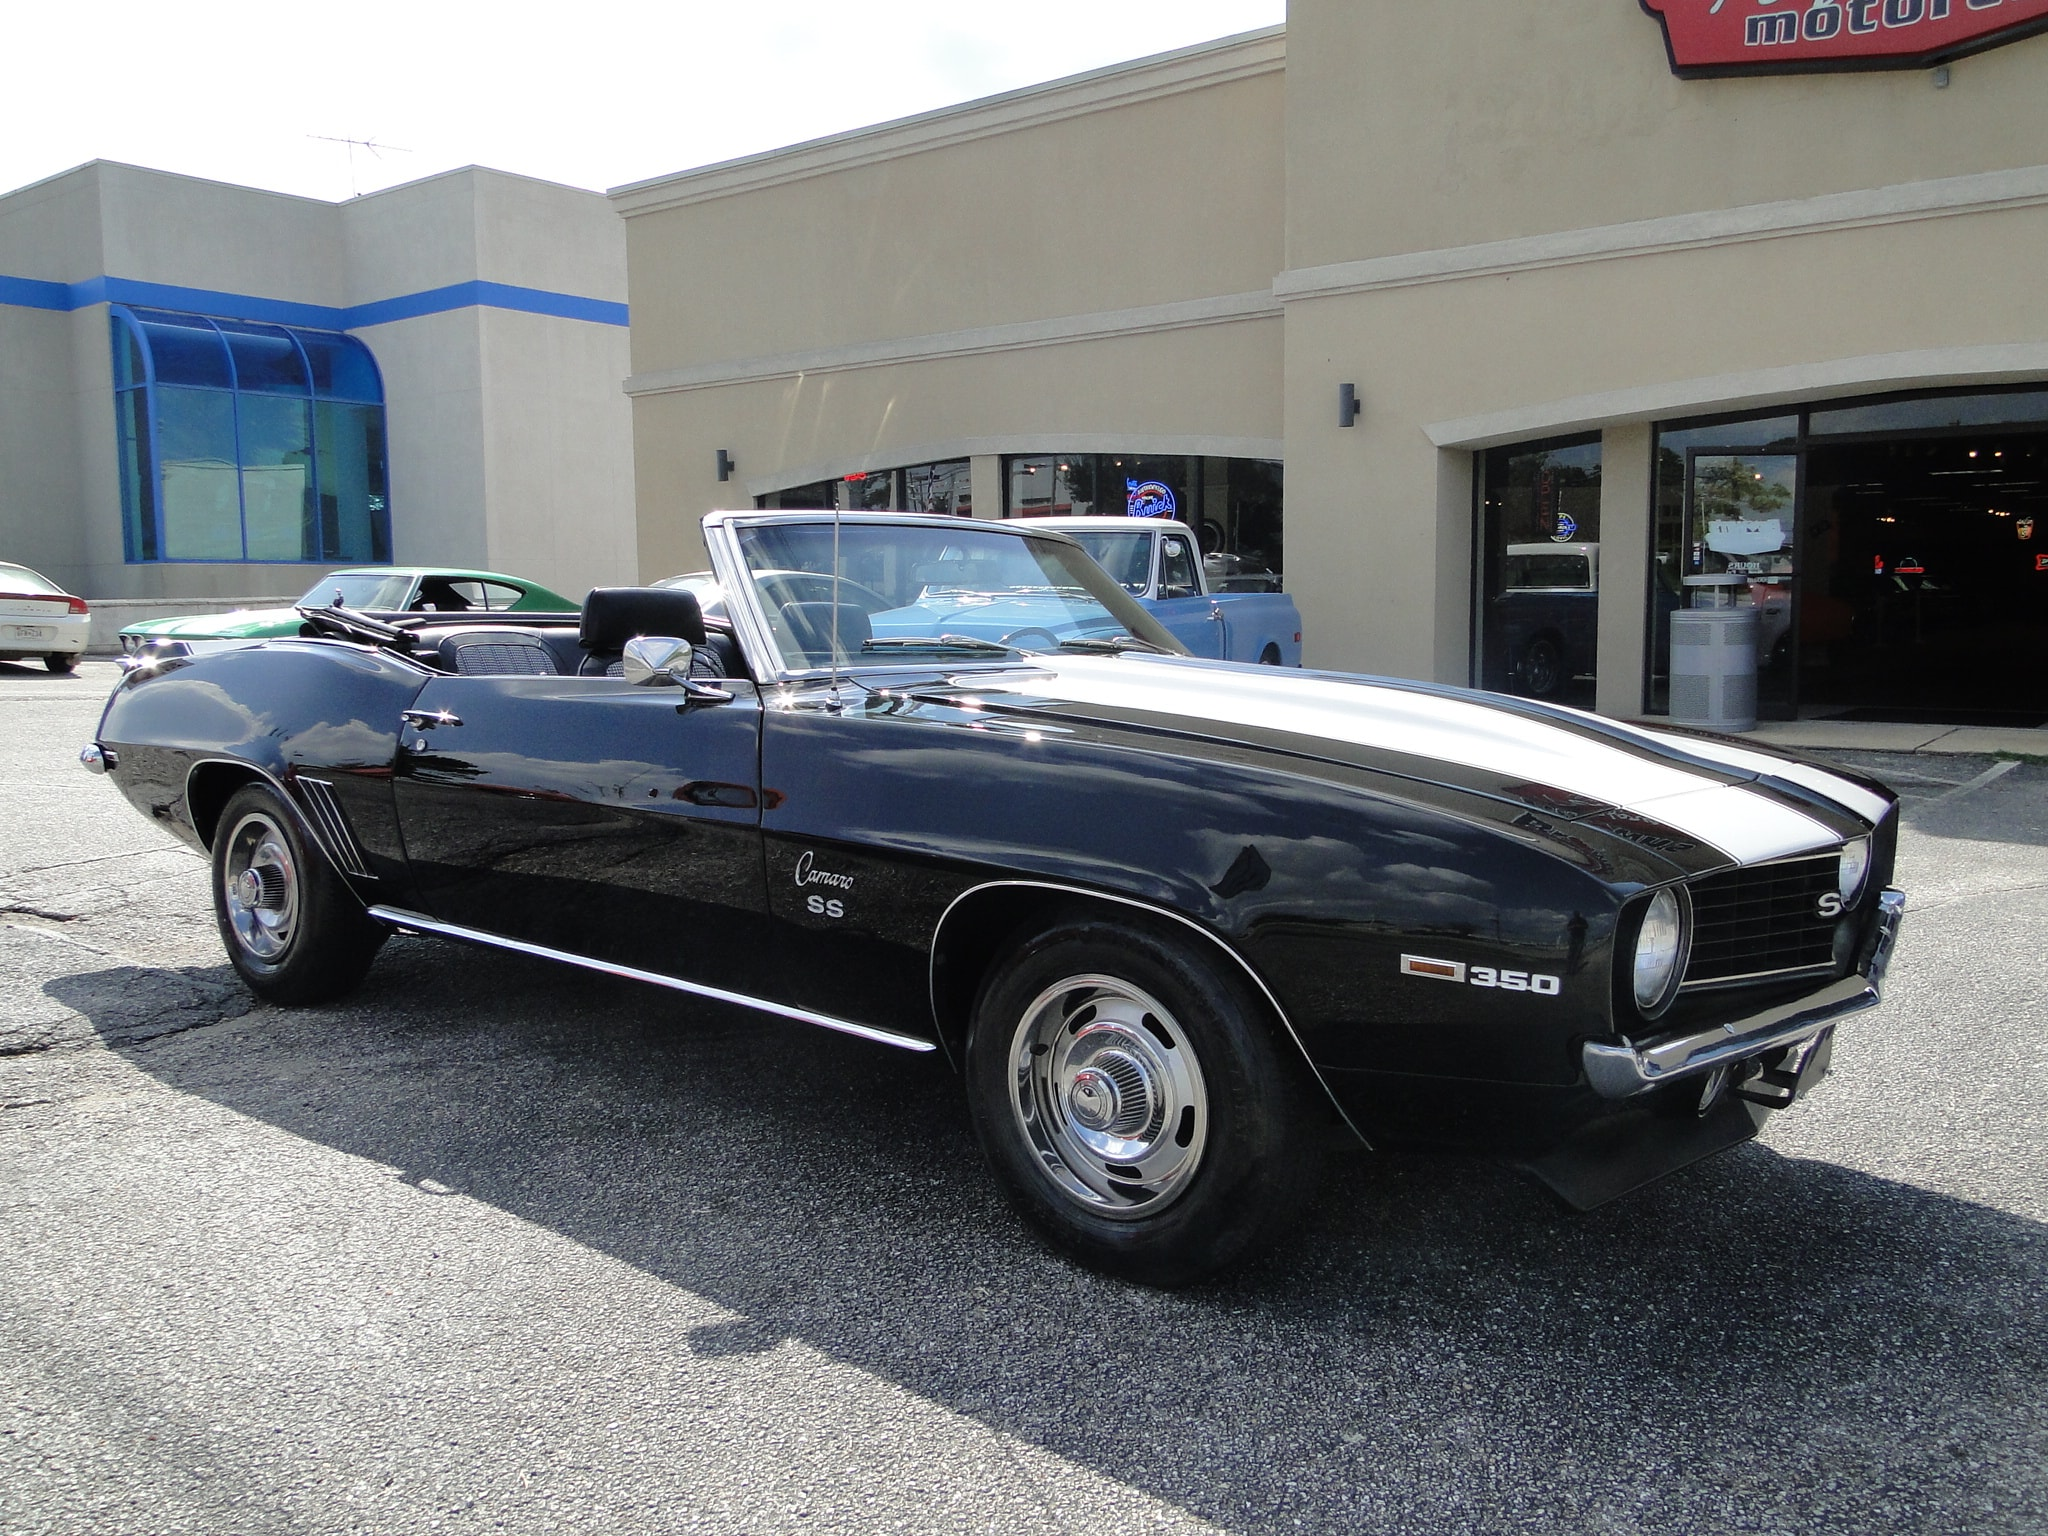 new 1969 chevrolet camaro convertible for sale glen burnie md r0364. Cars Review. Best American Auto & Cars Review